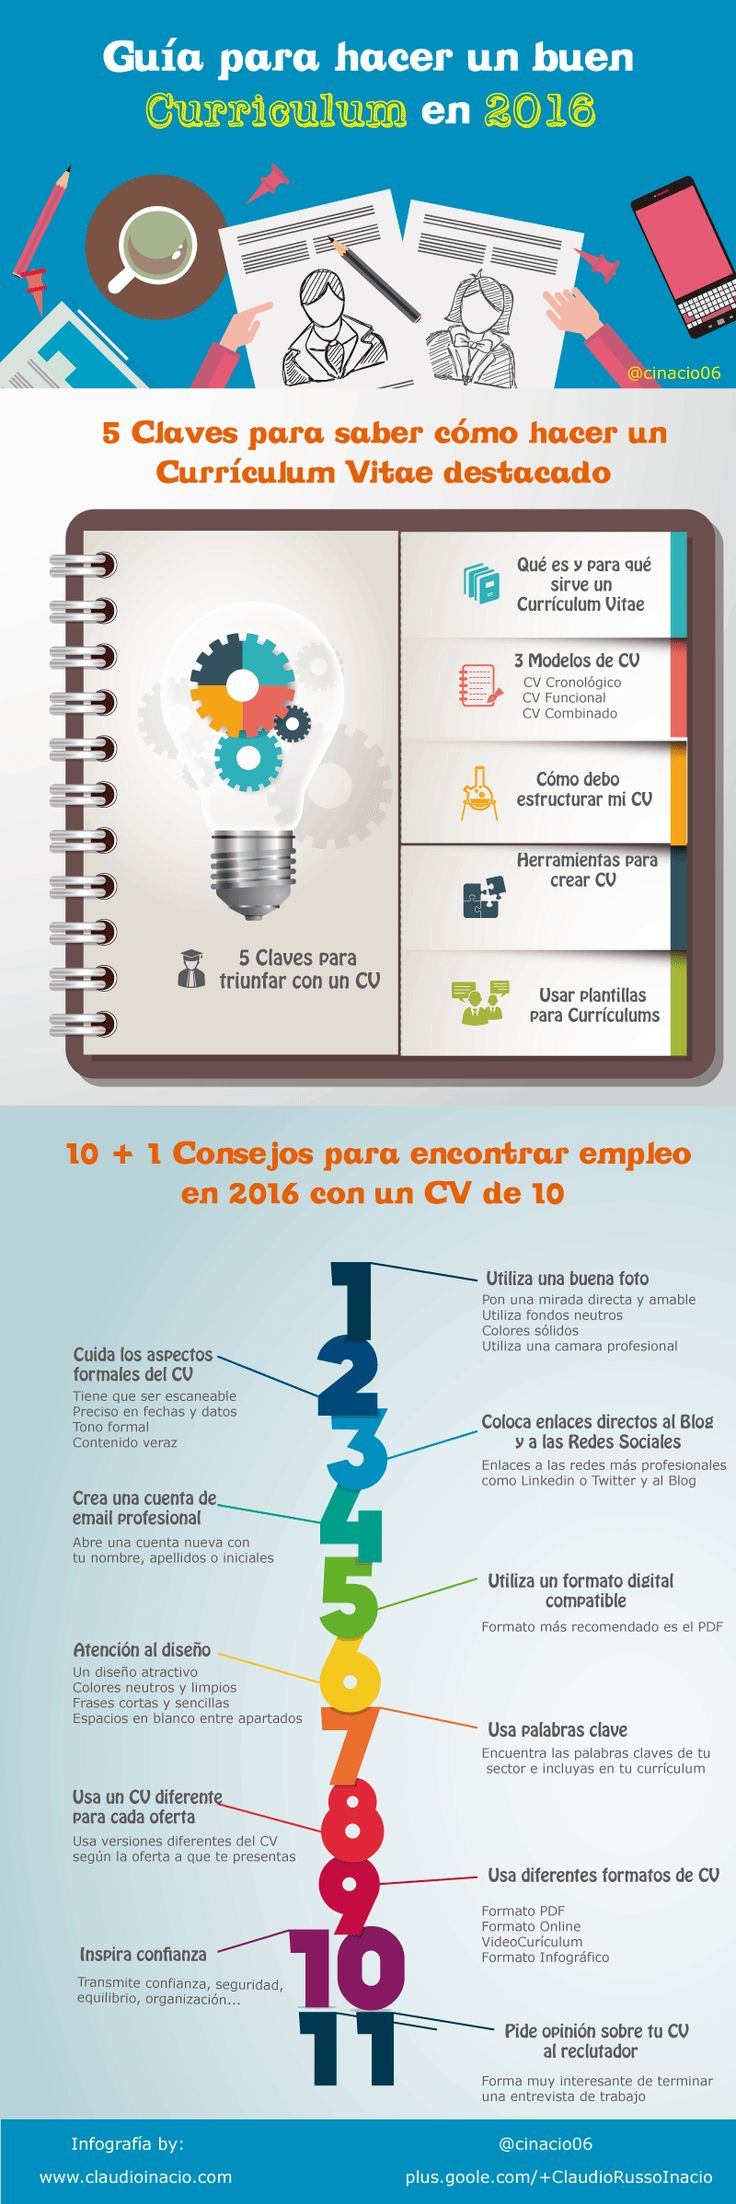 25  best ejemplos de cv ideas on pinterest